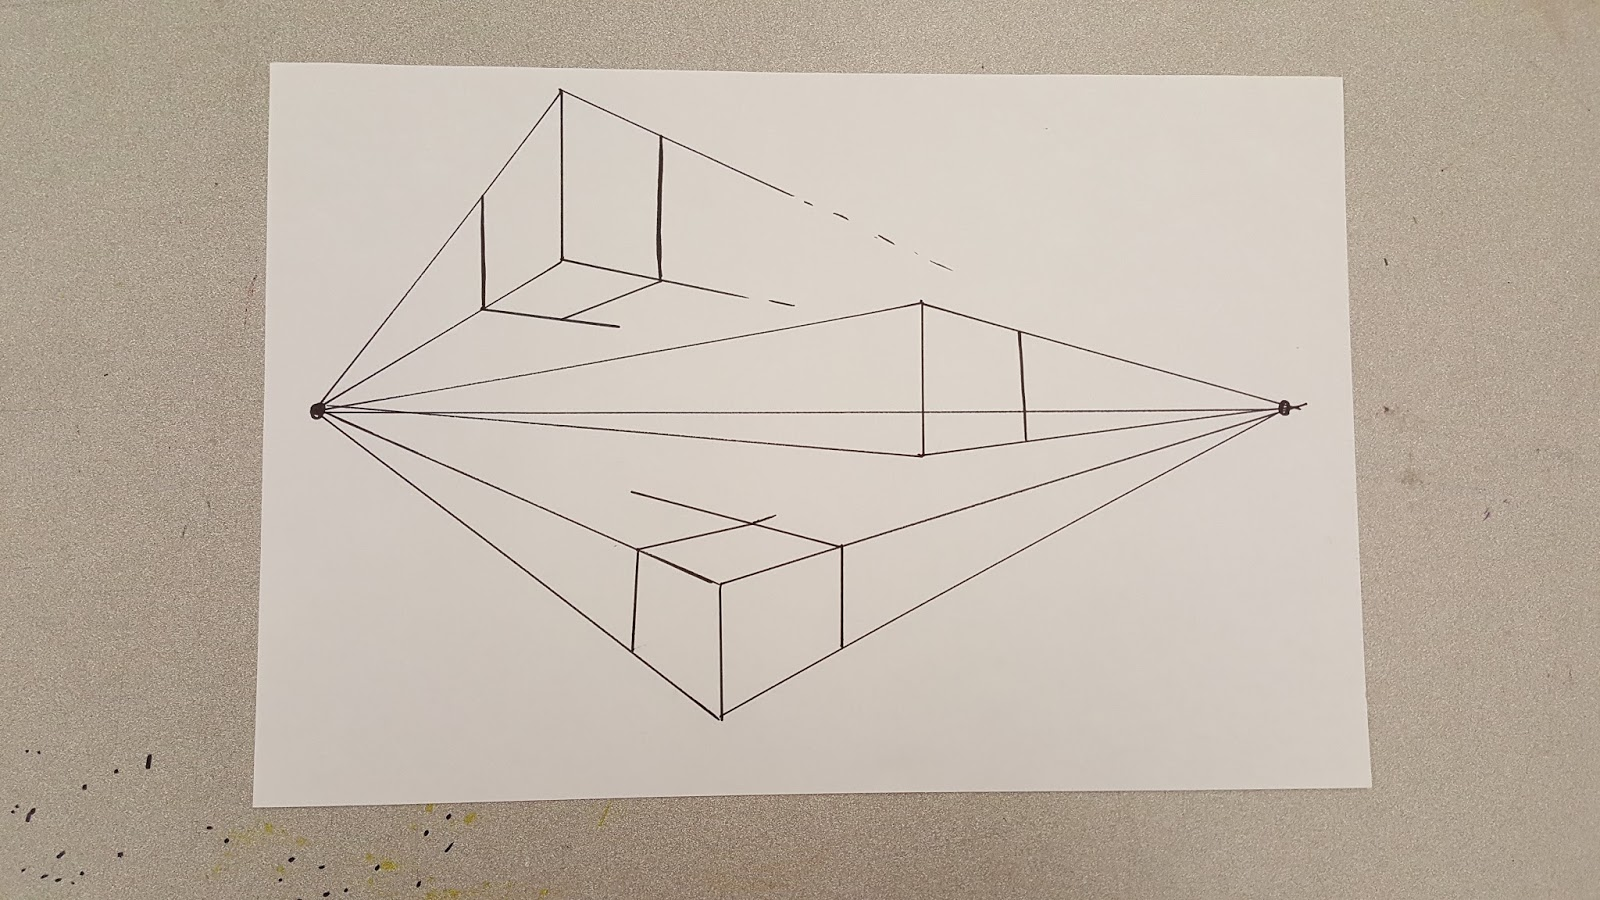 Line Drawing In Html : Nathan smith's art ed blog: week #3: perspective drawing exercise